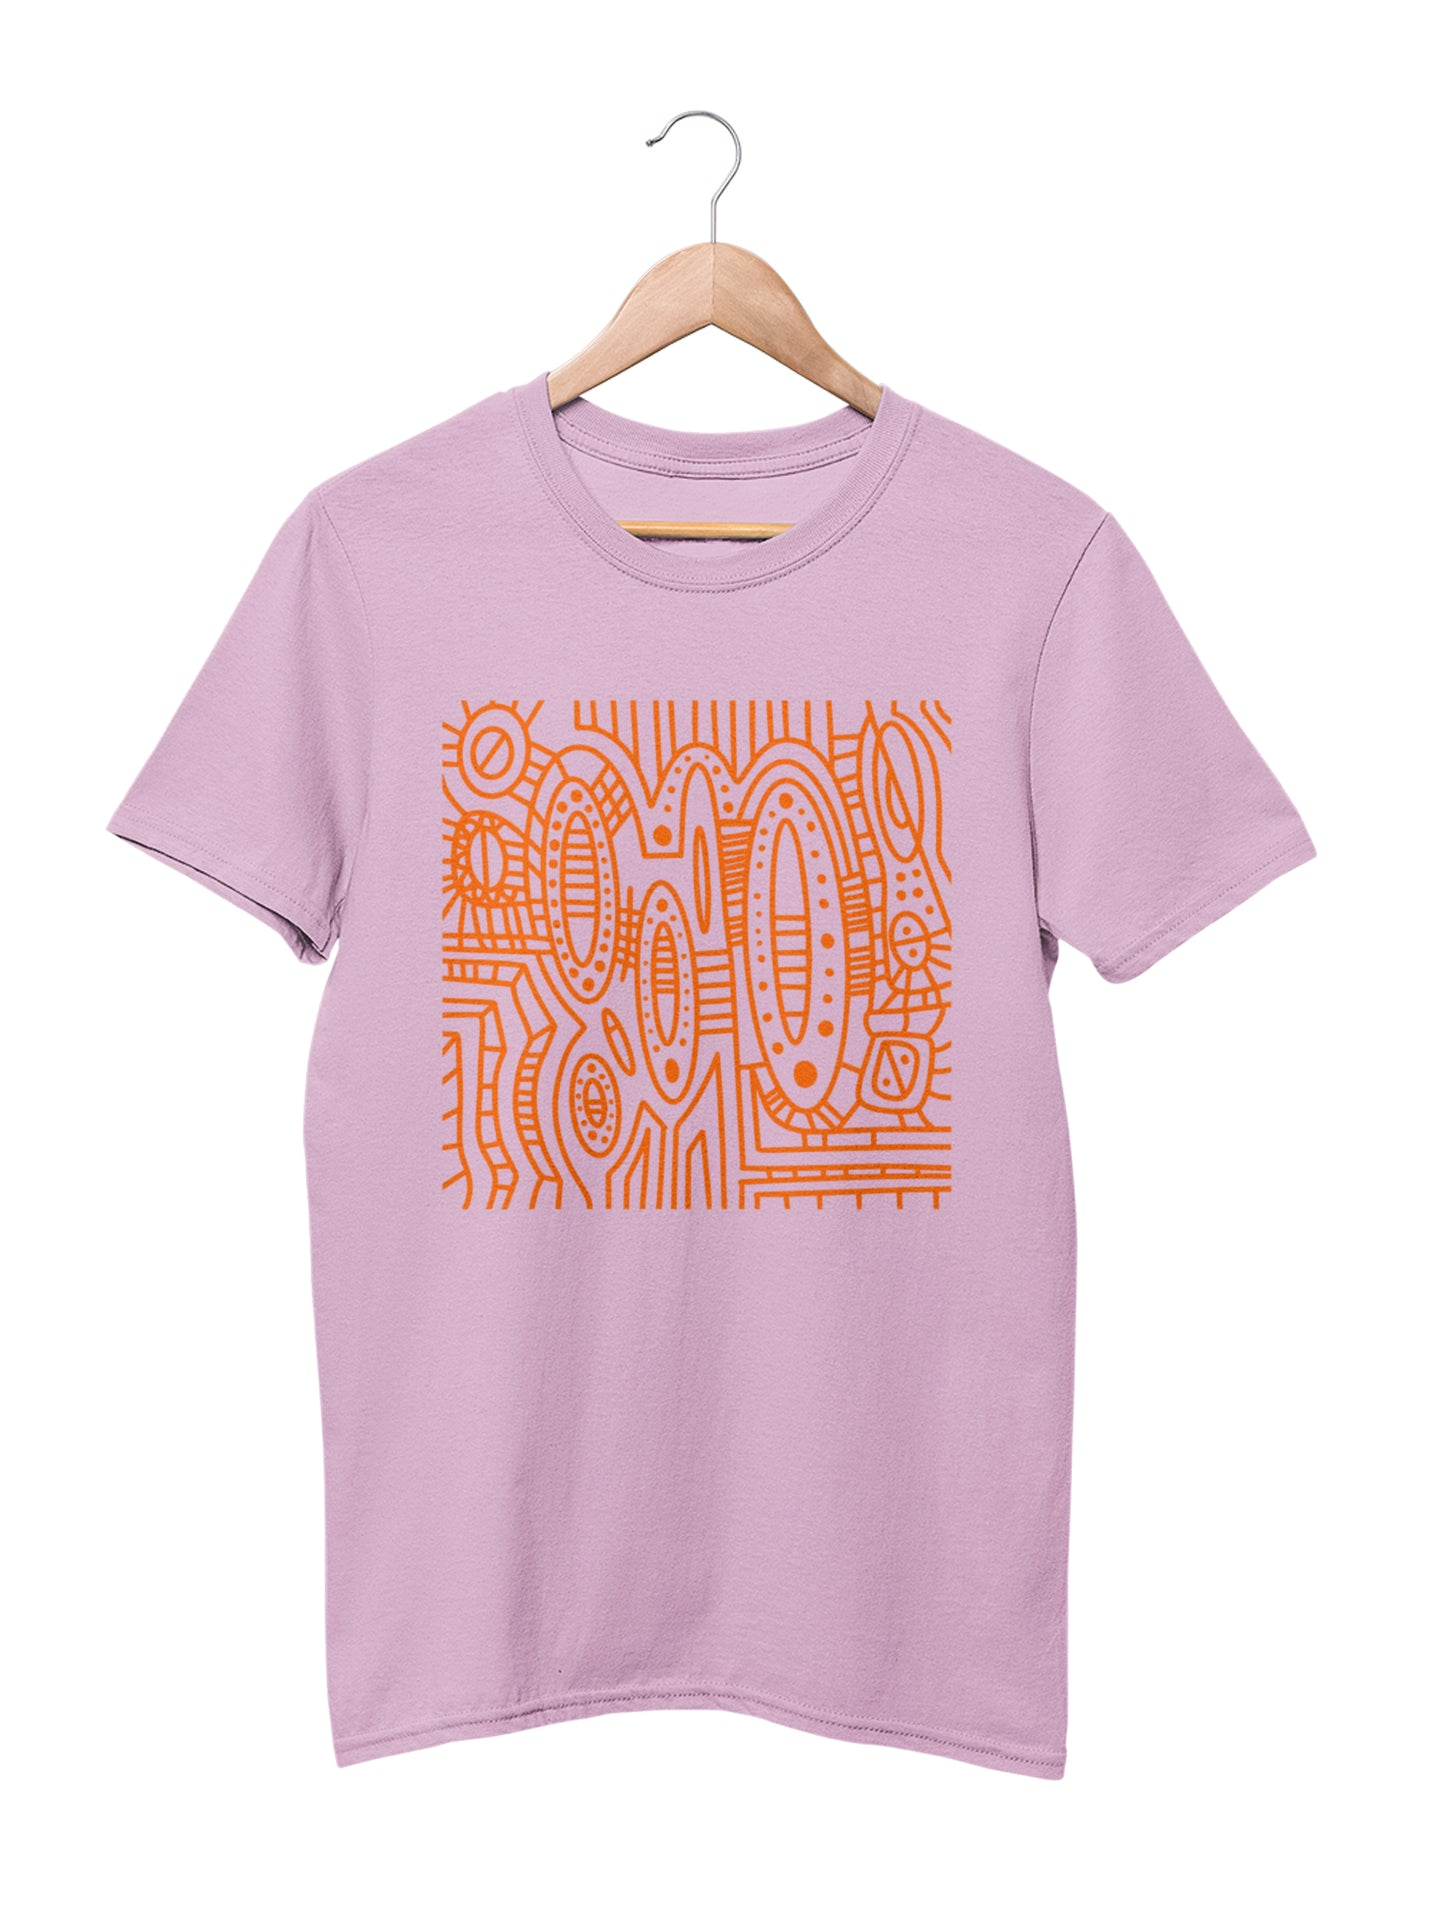 T-shirt with Cool Pattern Motif